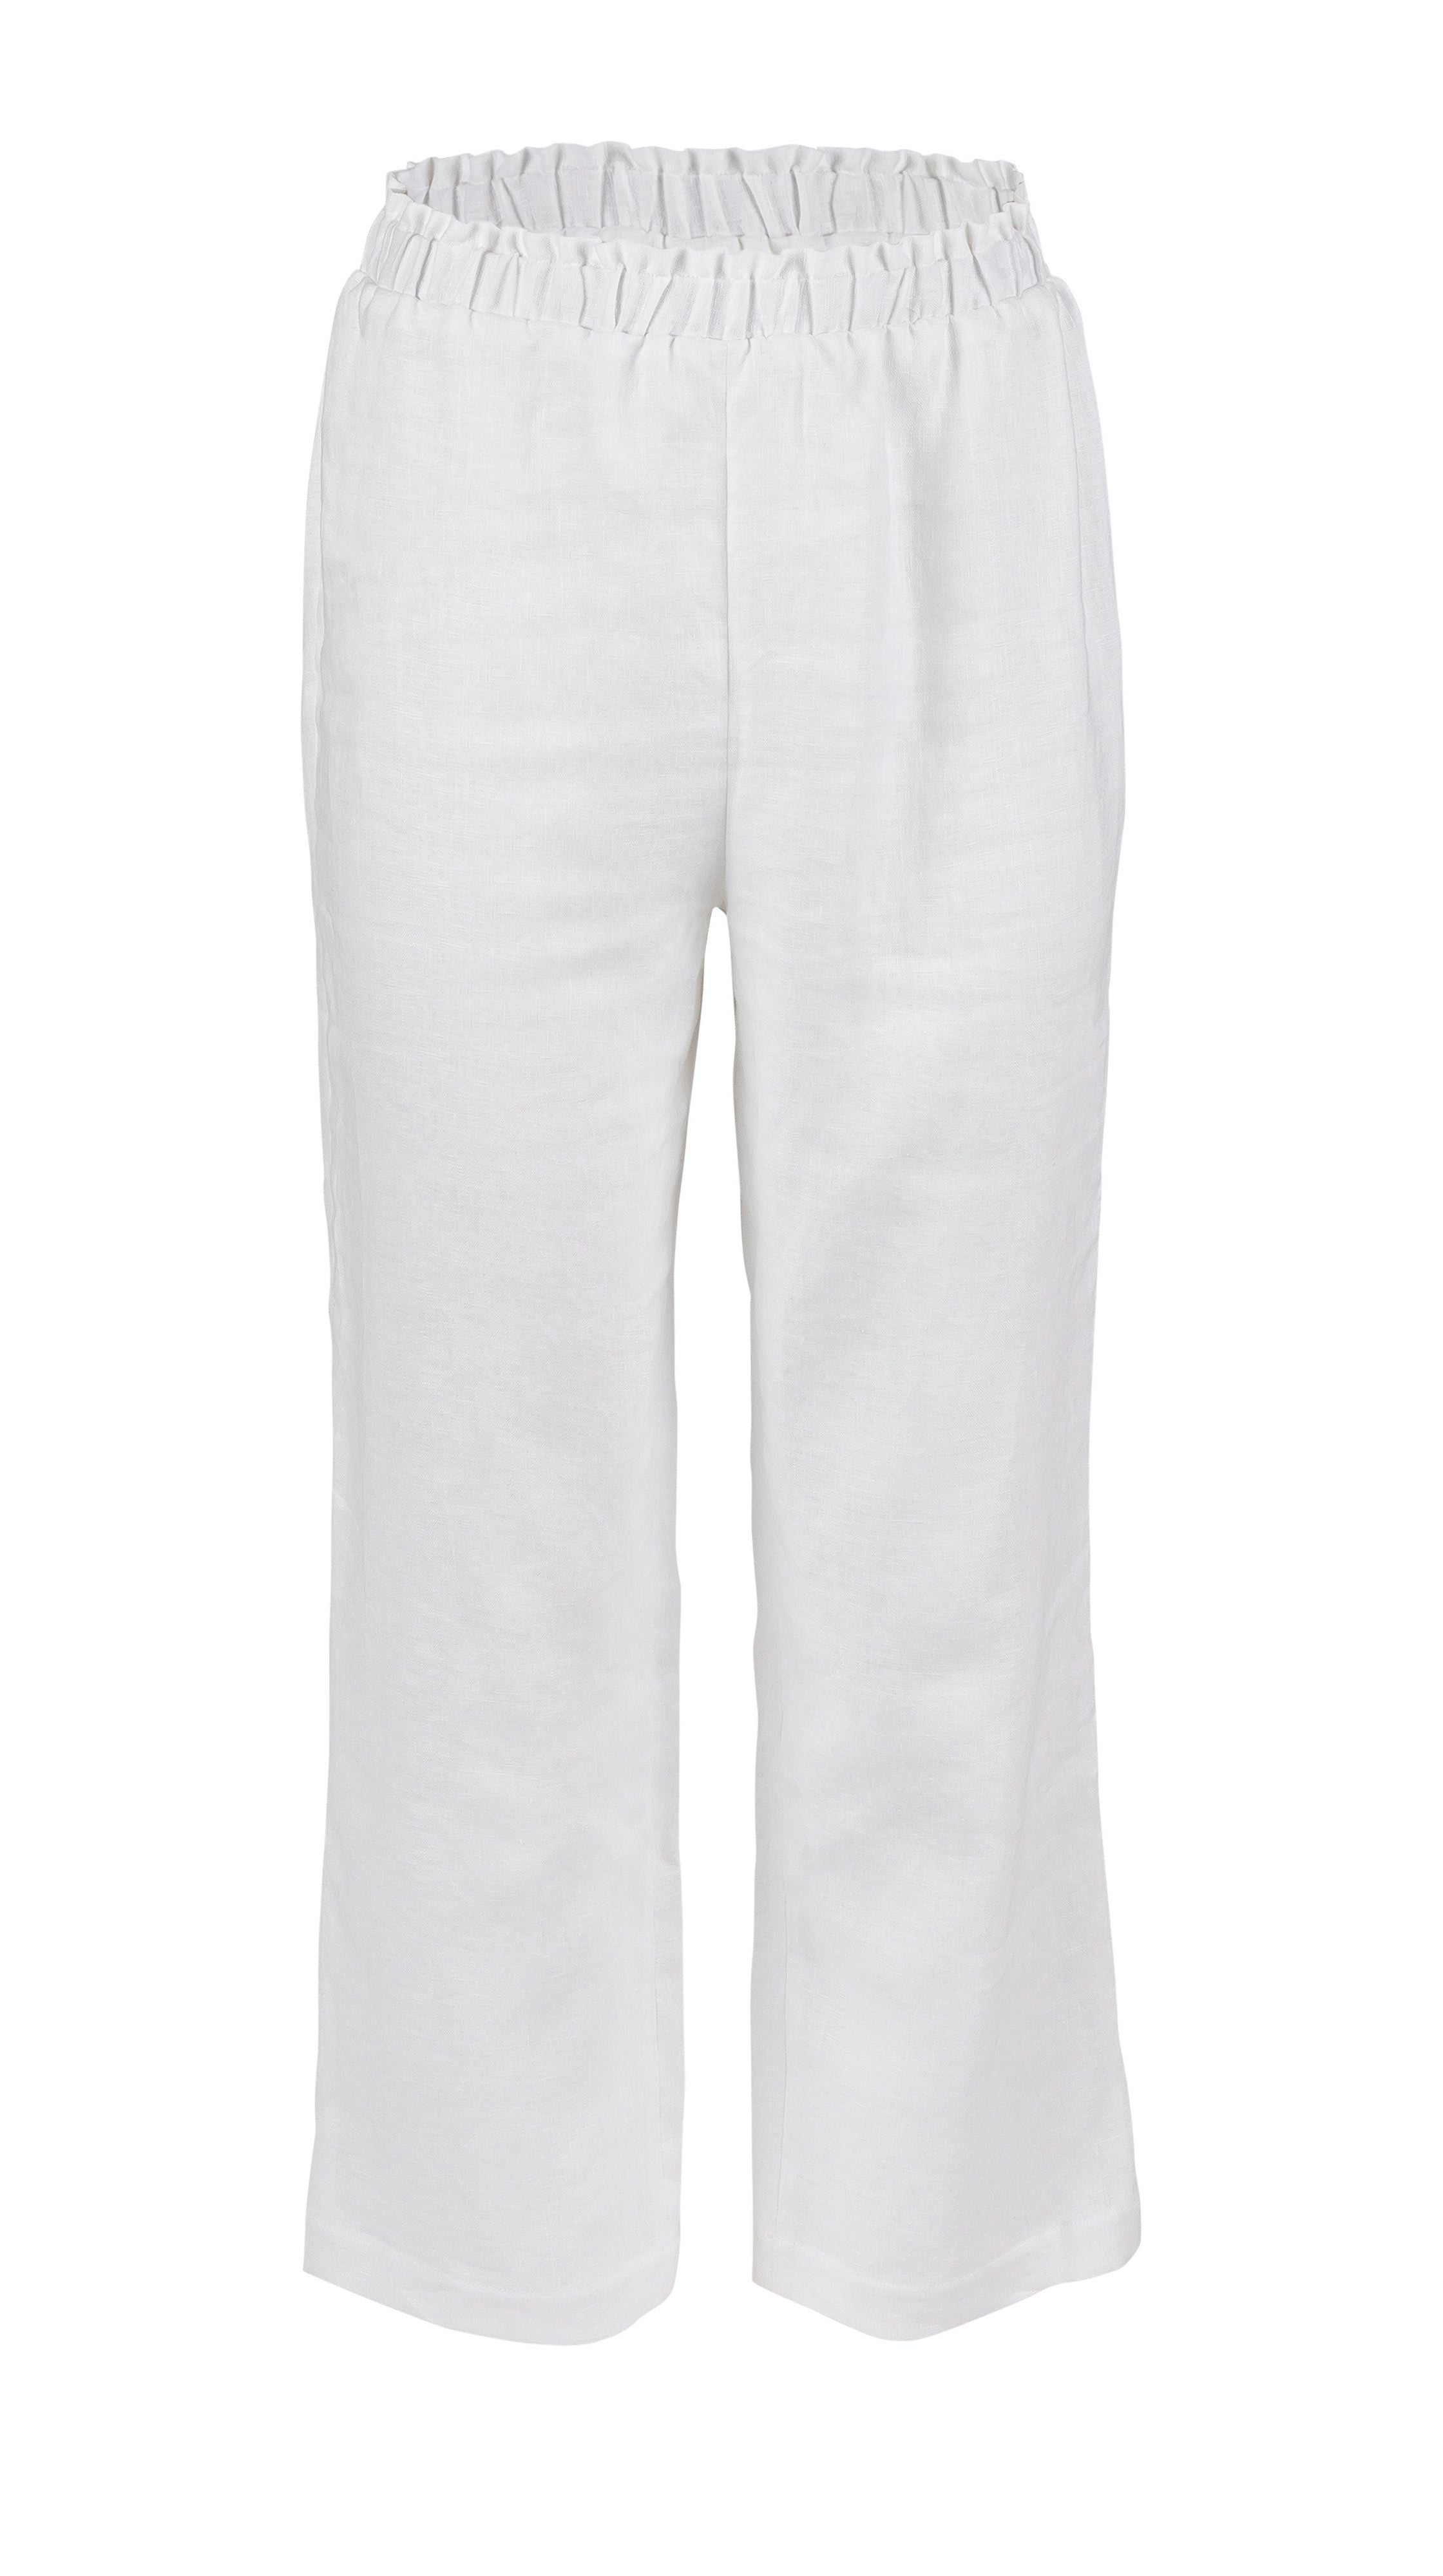 Sustainable summer womens White Linen Brunch elastic waist Pant by VARYFORM | Nineteenth Amendment